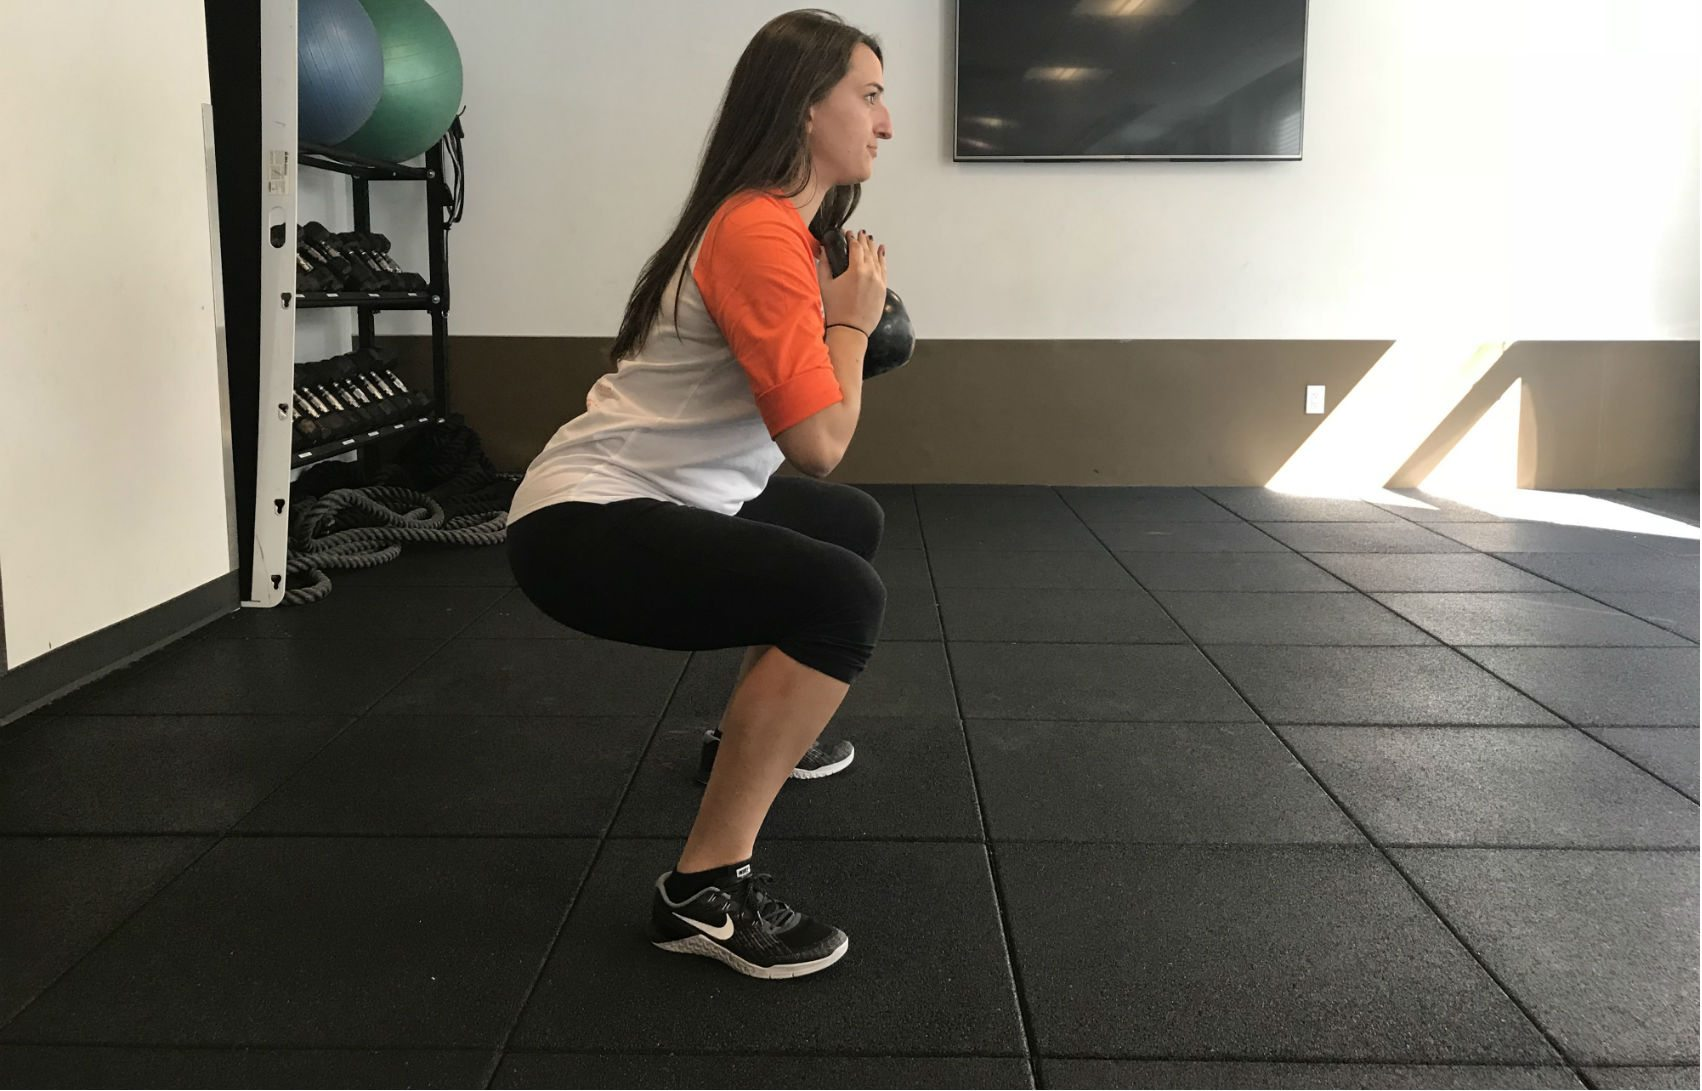 Monthly Fitness Challenge: How Many Goblet Squats Can You Do?